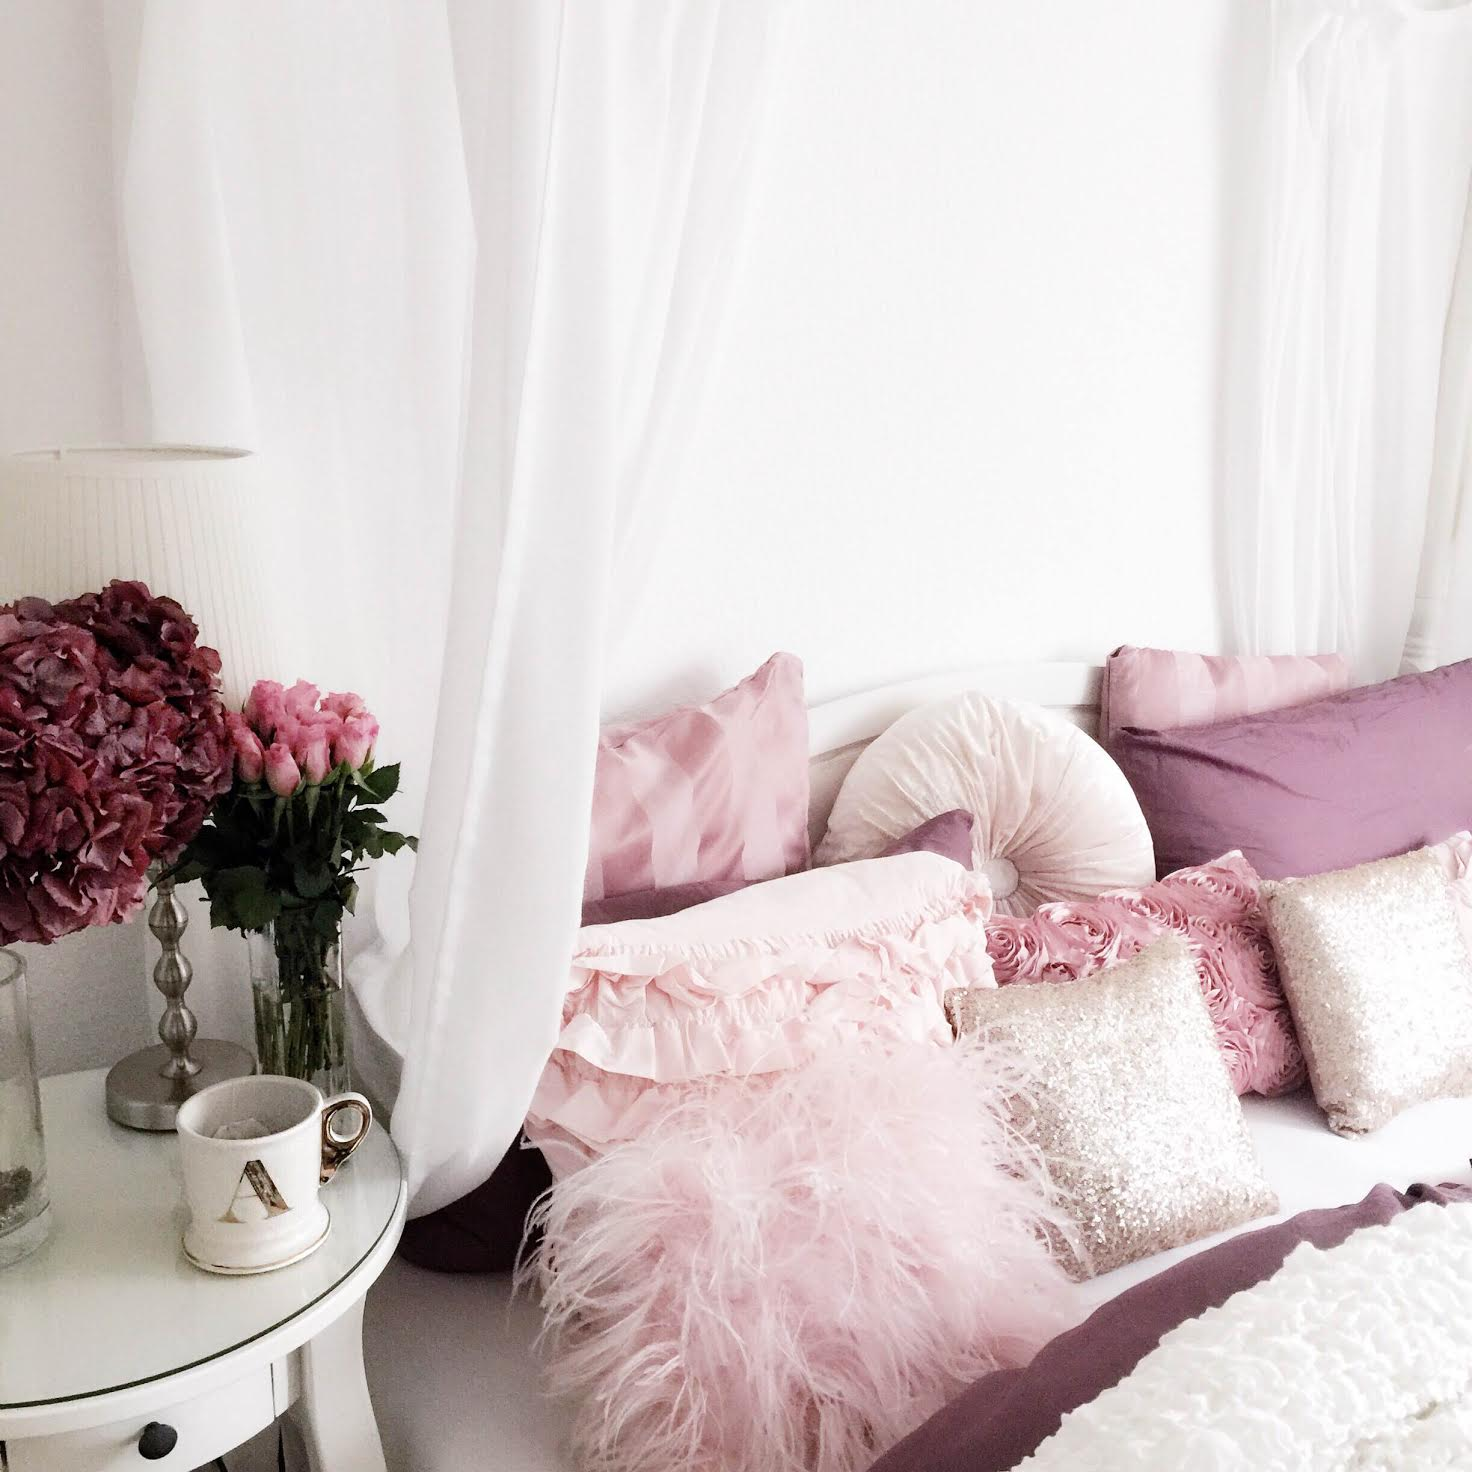 bedroom-fashionhippieloves